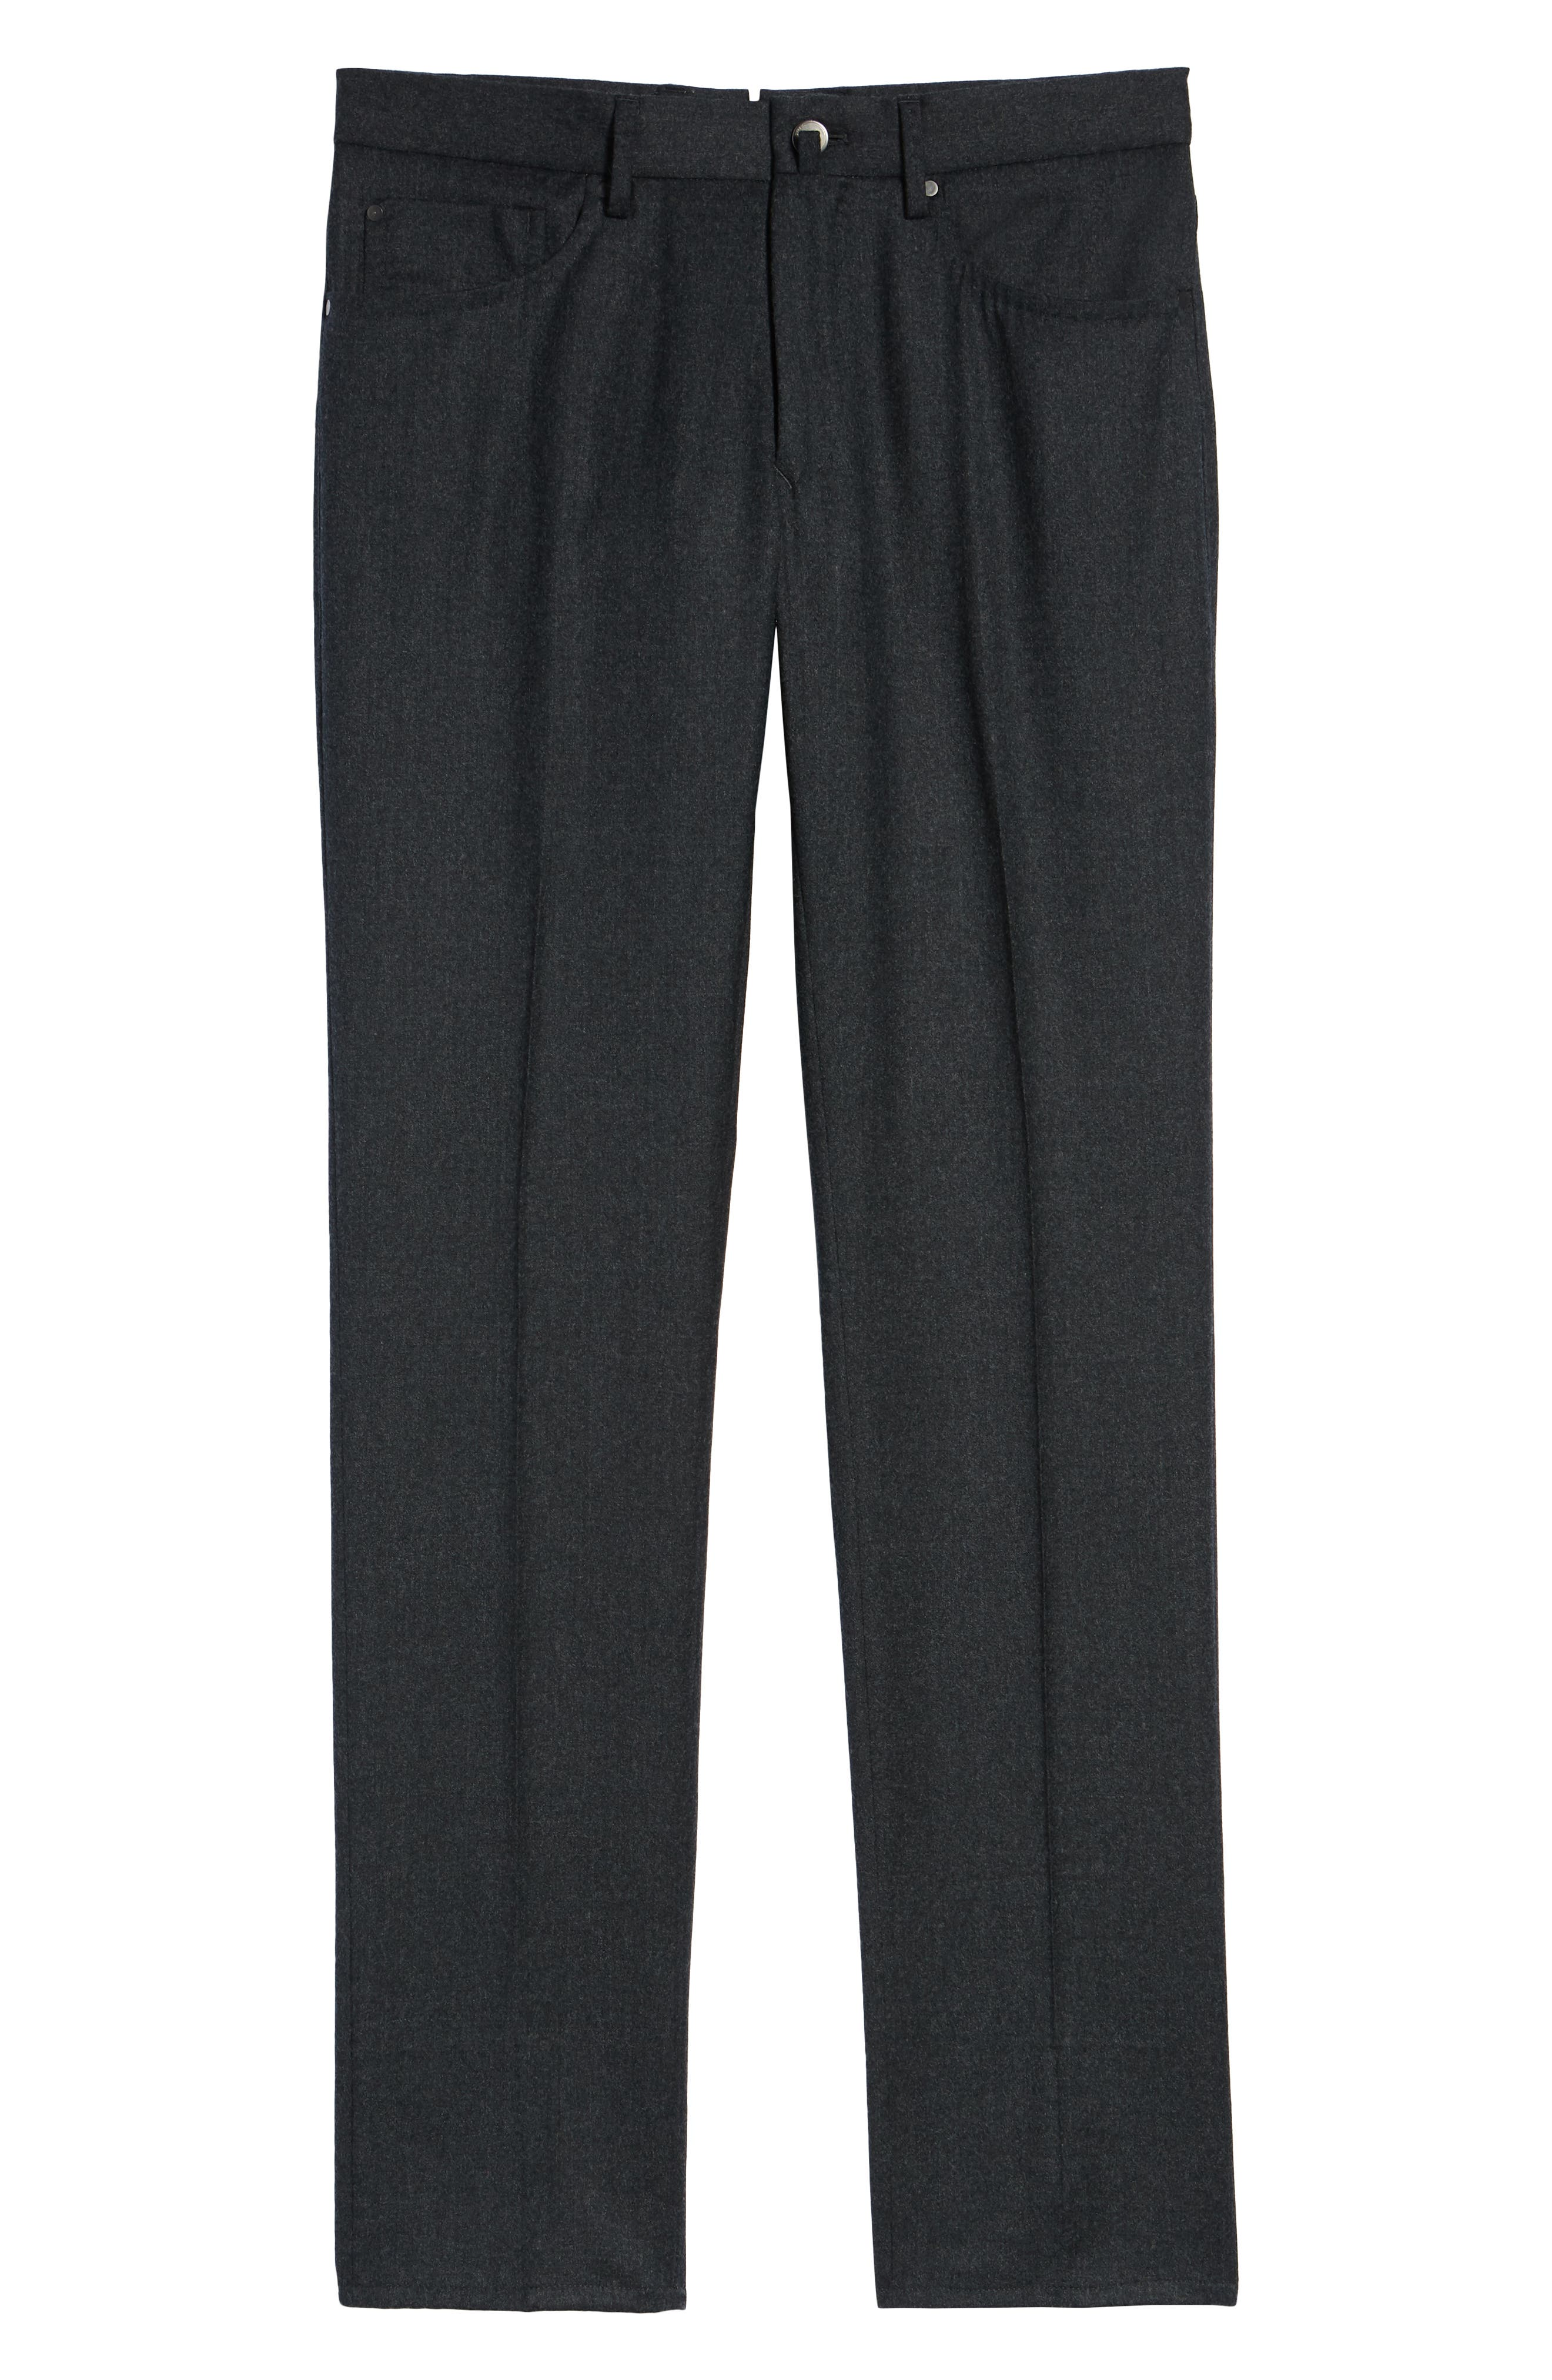 Five-Pocket Solid Wool Trousers,                             Alternate thumbnail 6, color,                             CHARCOAL